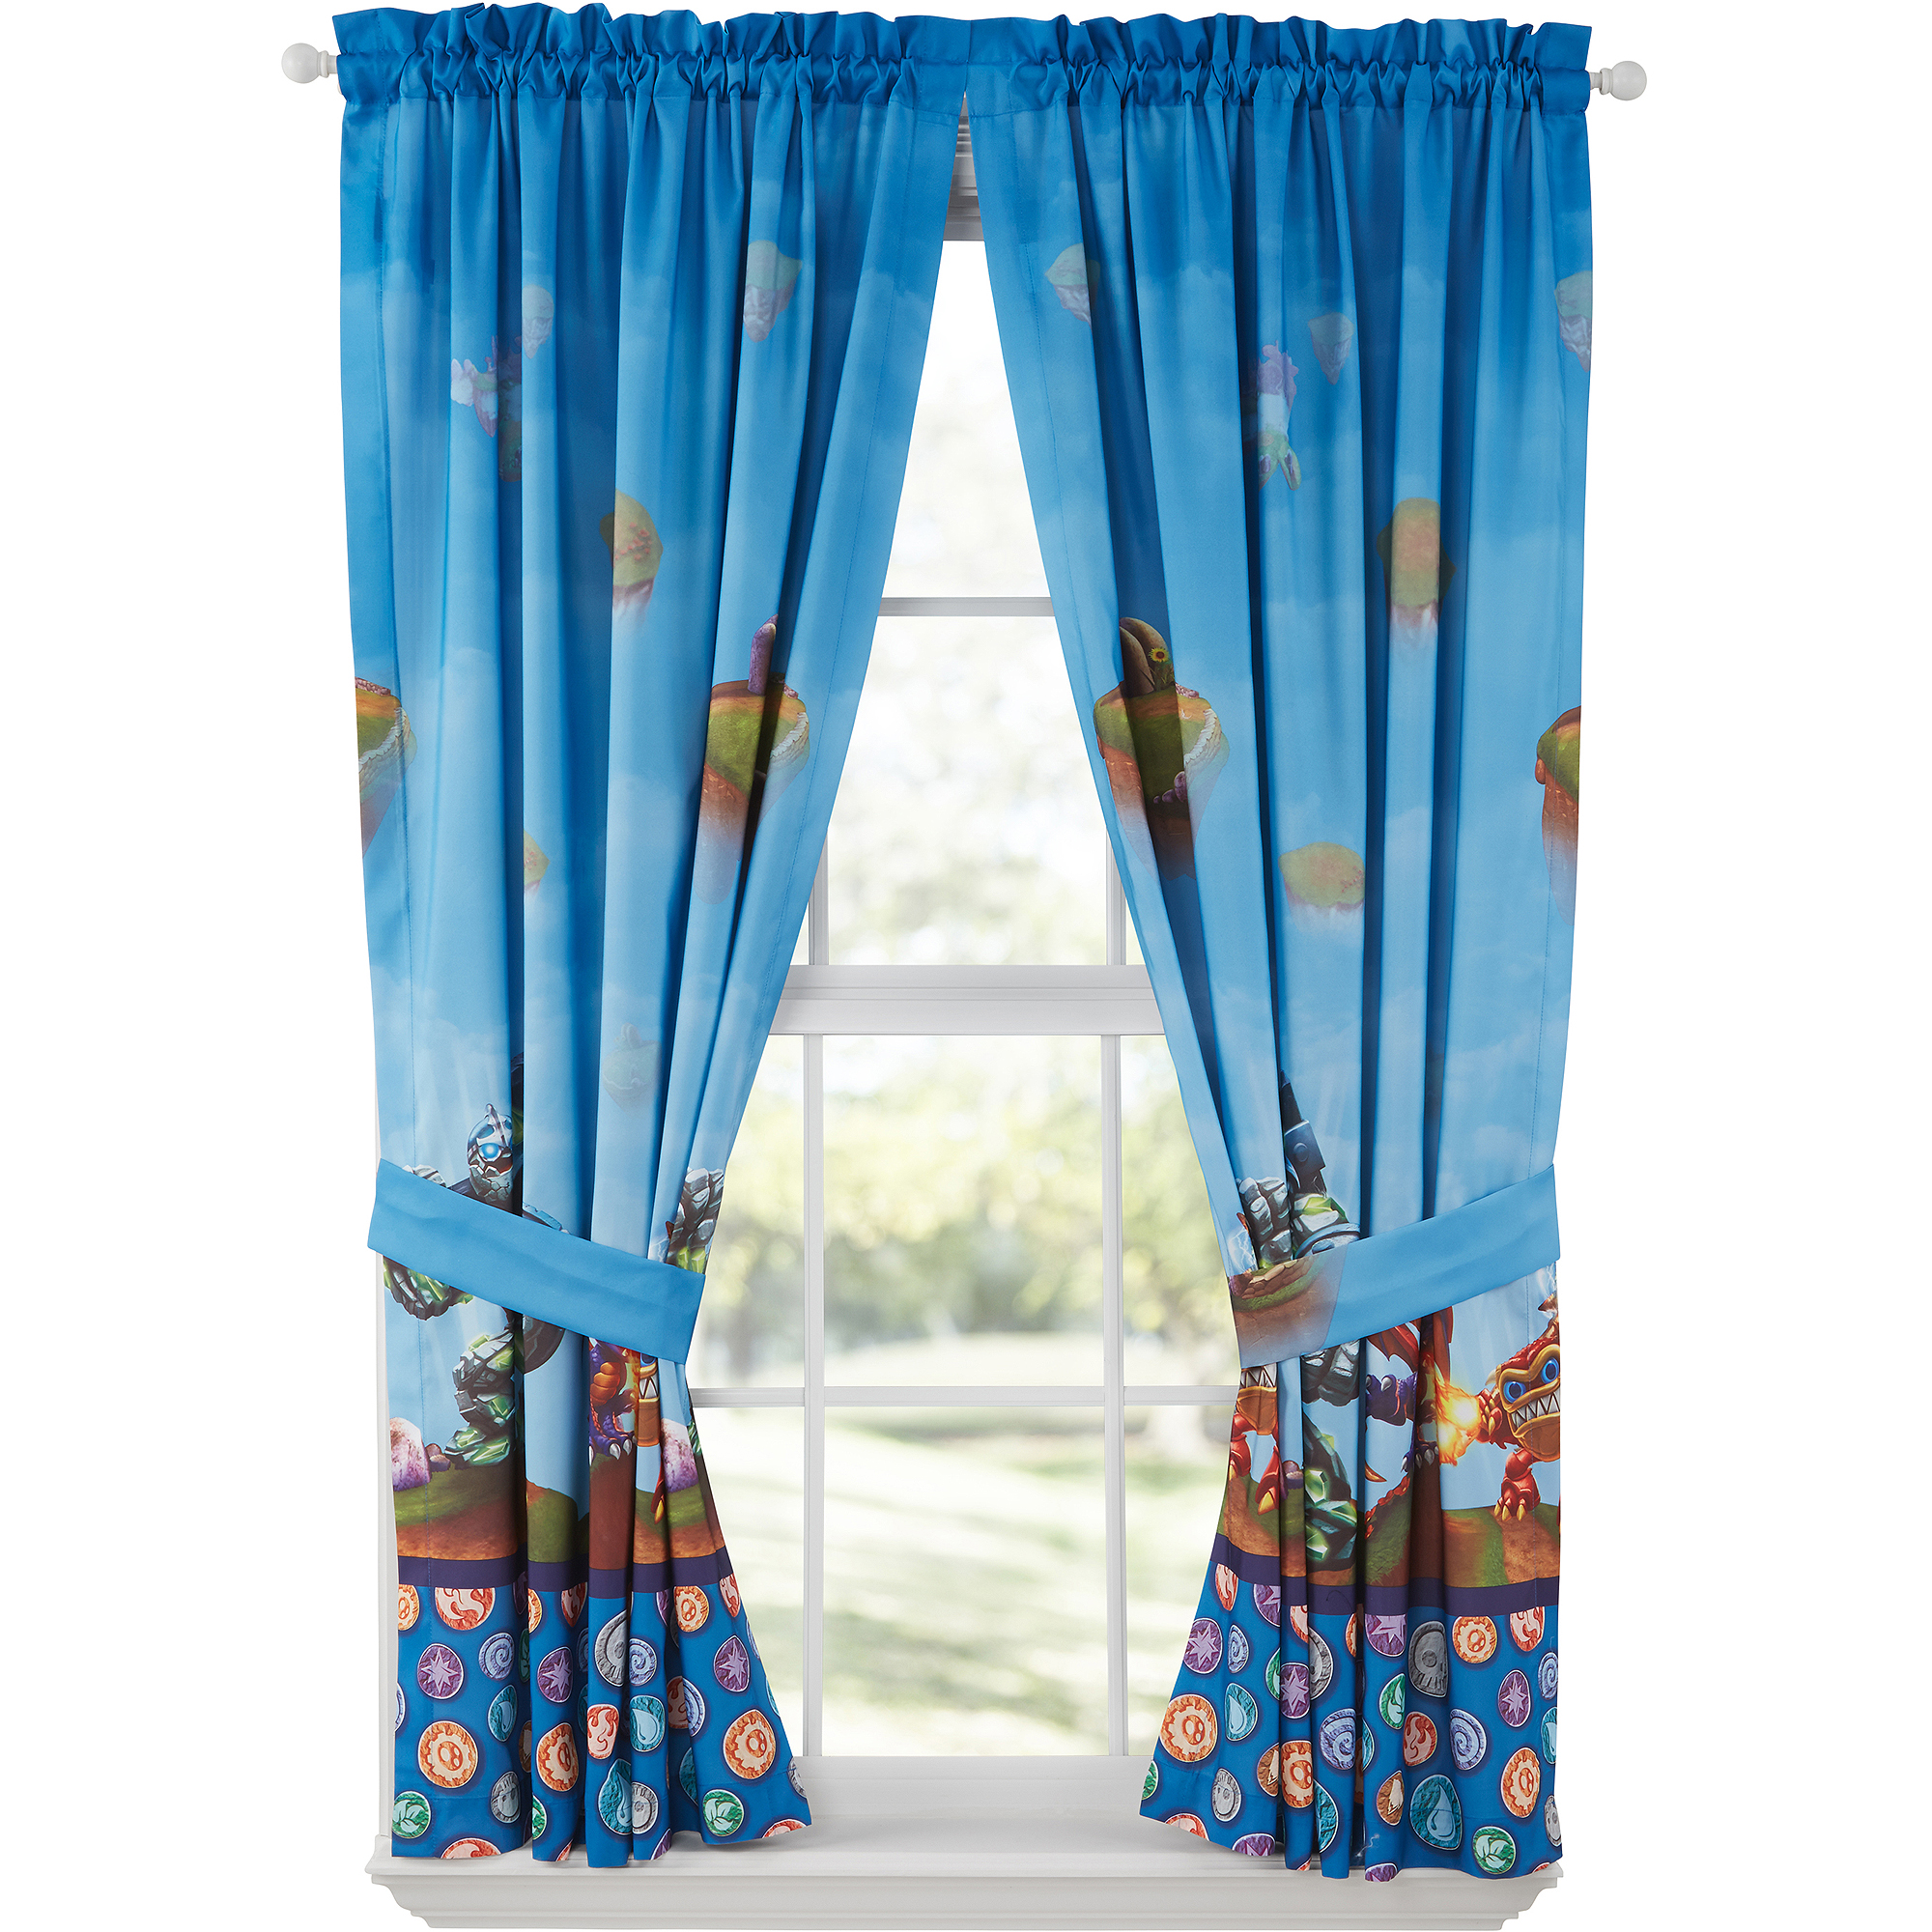 Kids' Curtains When you have kids, and become a homeowner, you aren't just outfitting your own bedroom anymore. You need to build a nursery, and as your kids grow, you transform the nursery into a kid's bedroom.